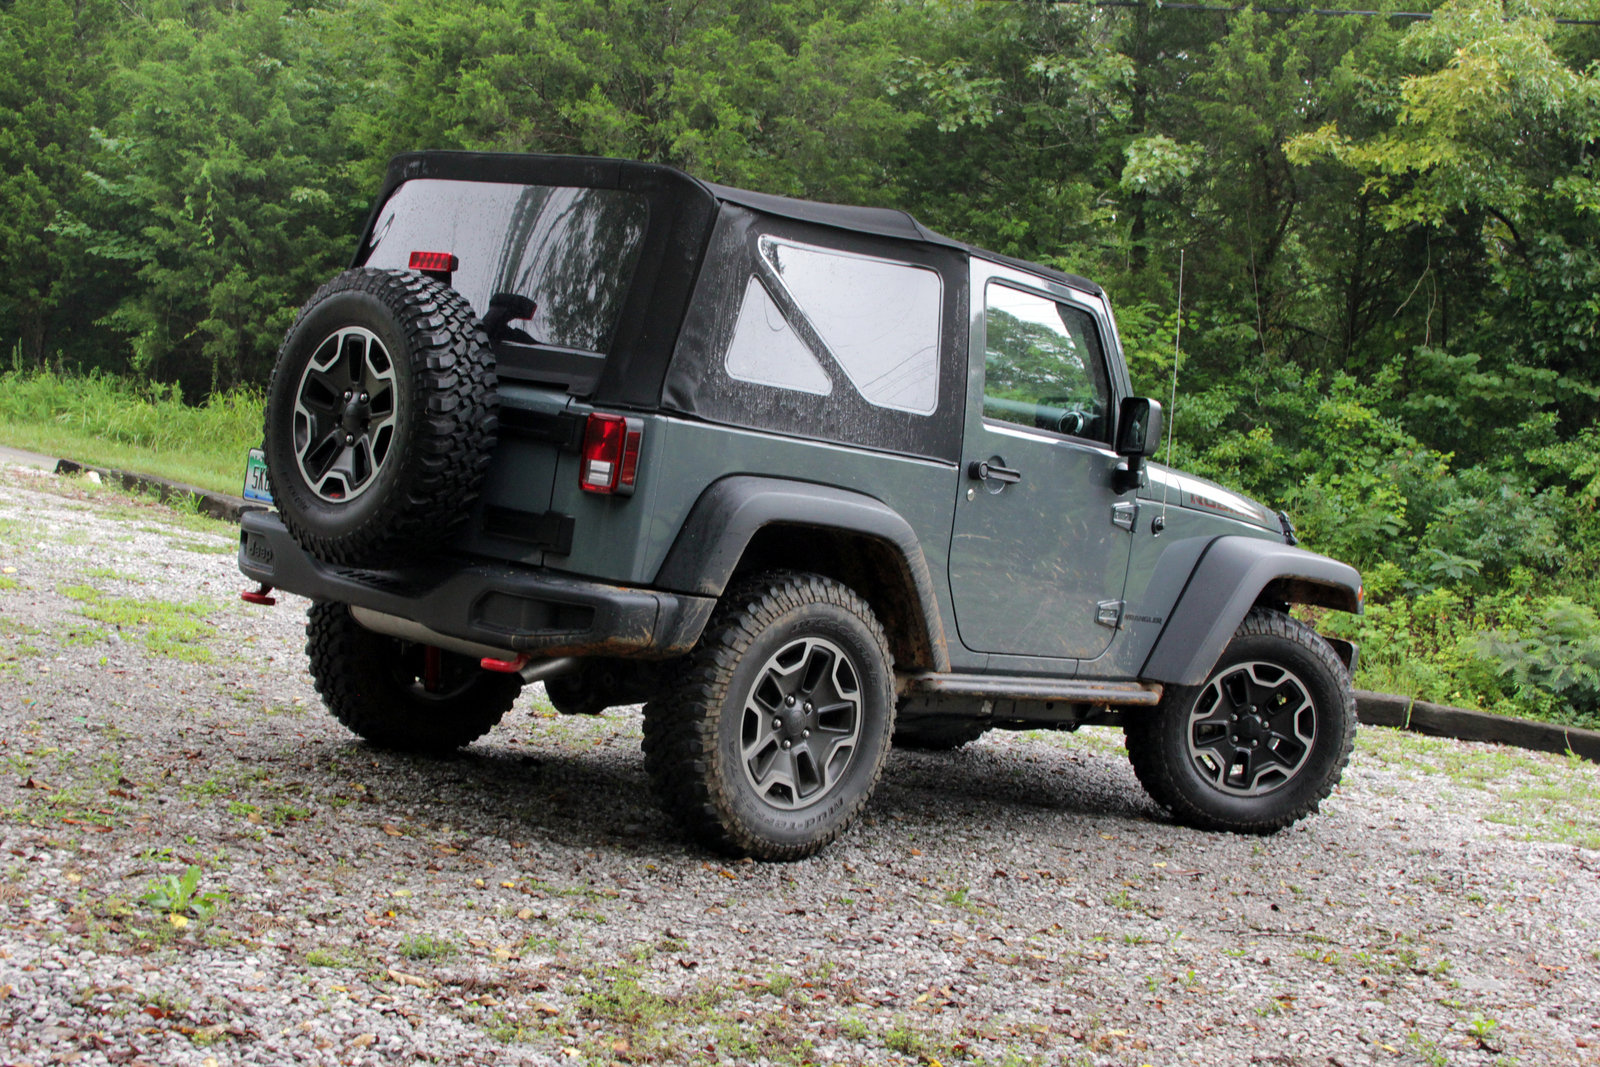 2014 jeep wrangler rubicon x driven picture 564965 car review top speed. Black Bedroom Furniture Sets. Home Design Ideas